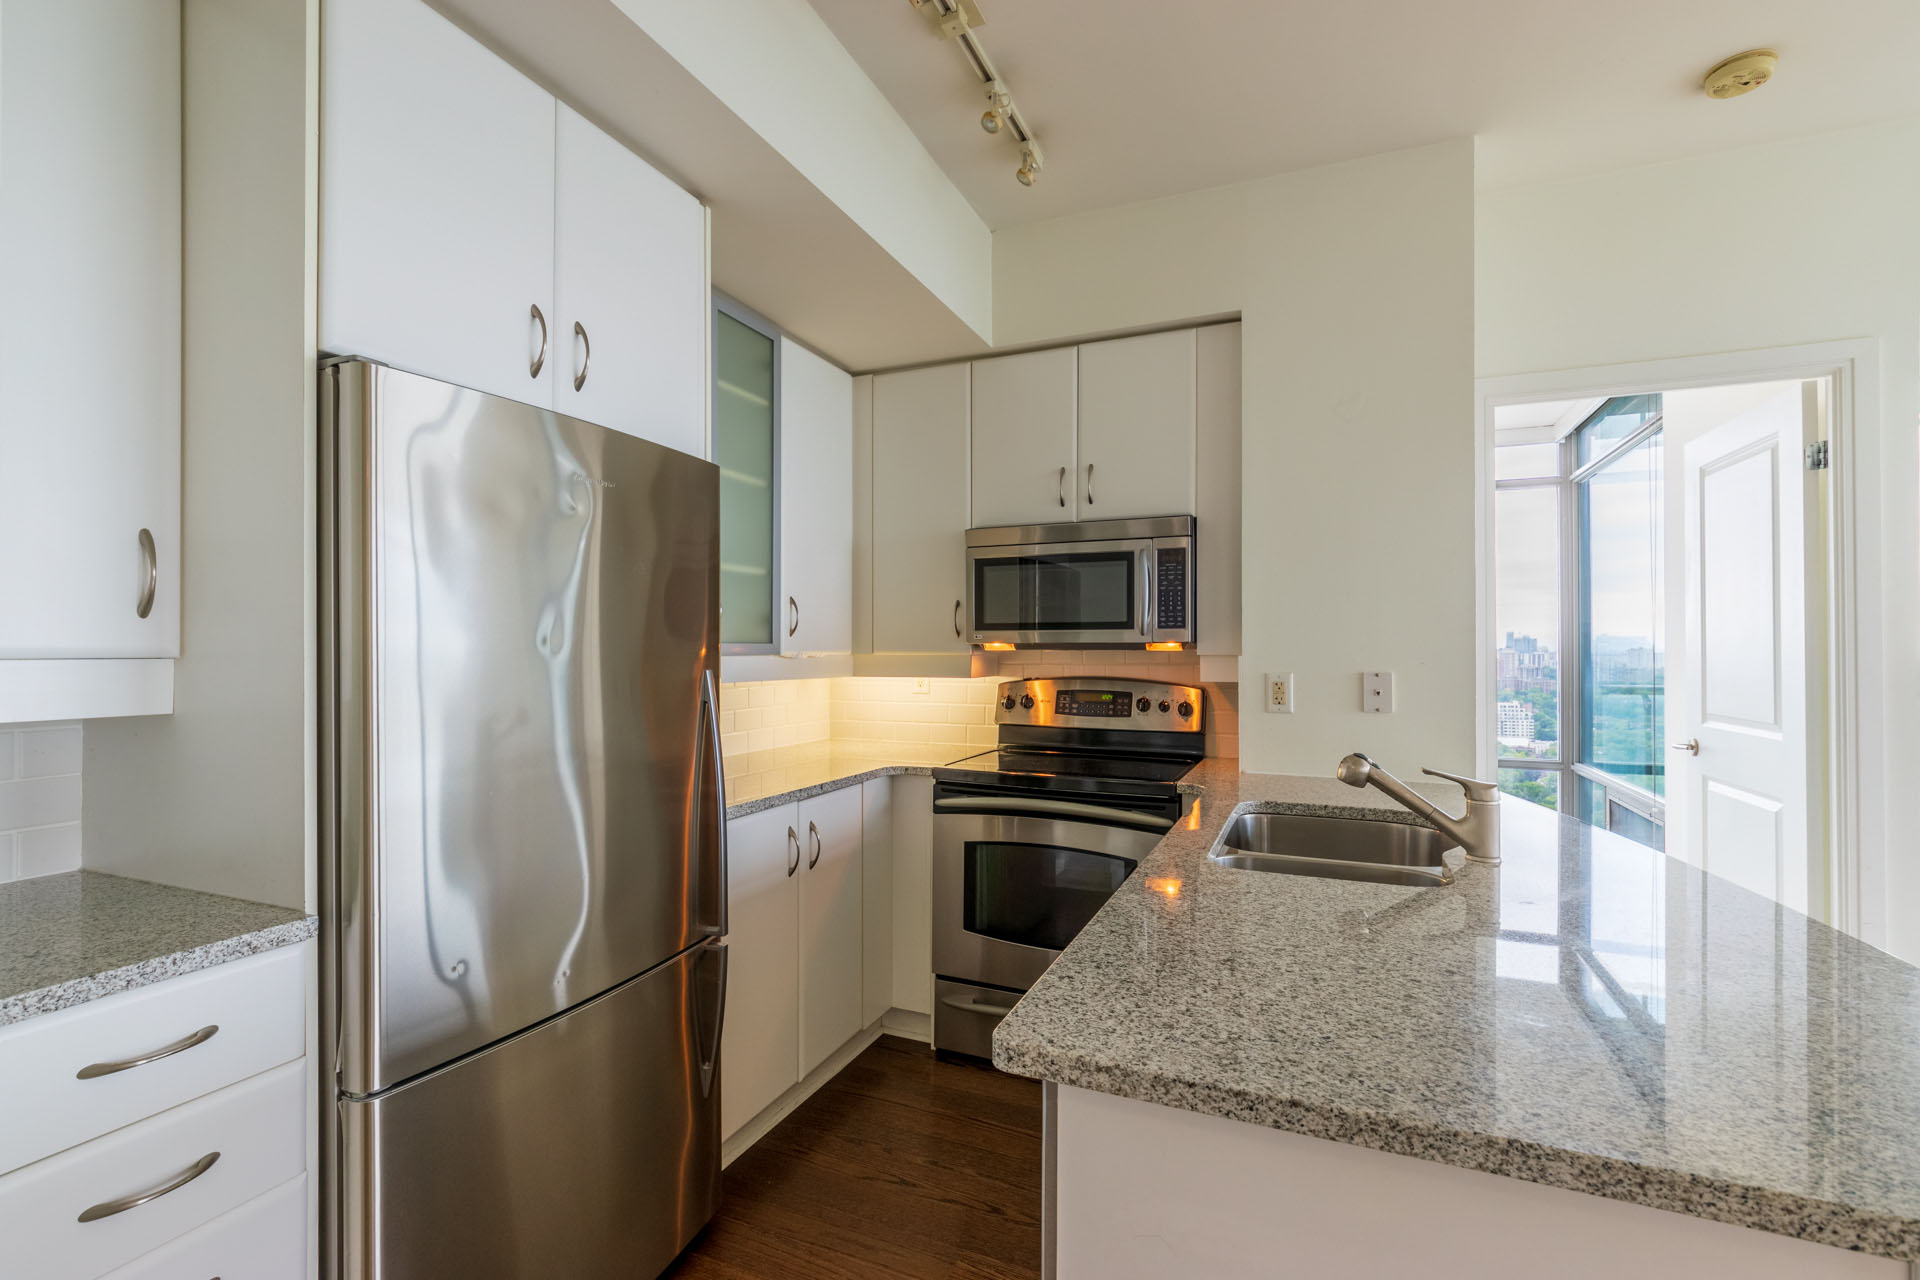 Suite for Rent in Downtown Toronto, Kitchen, Stainless Steel Appliances